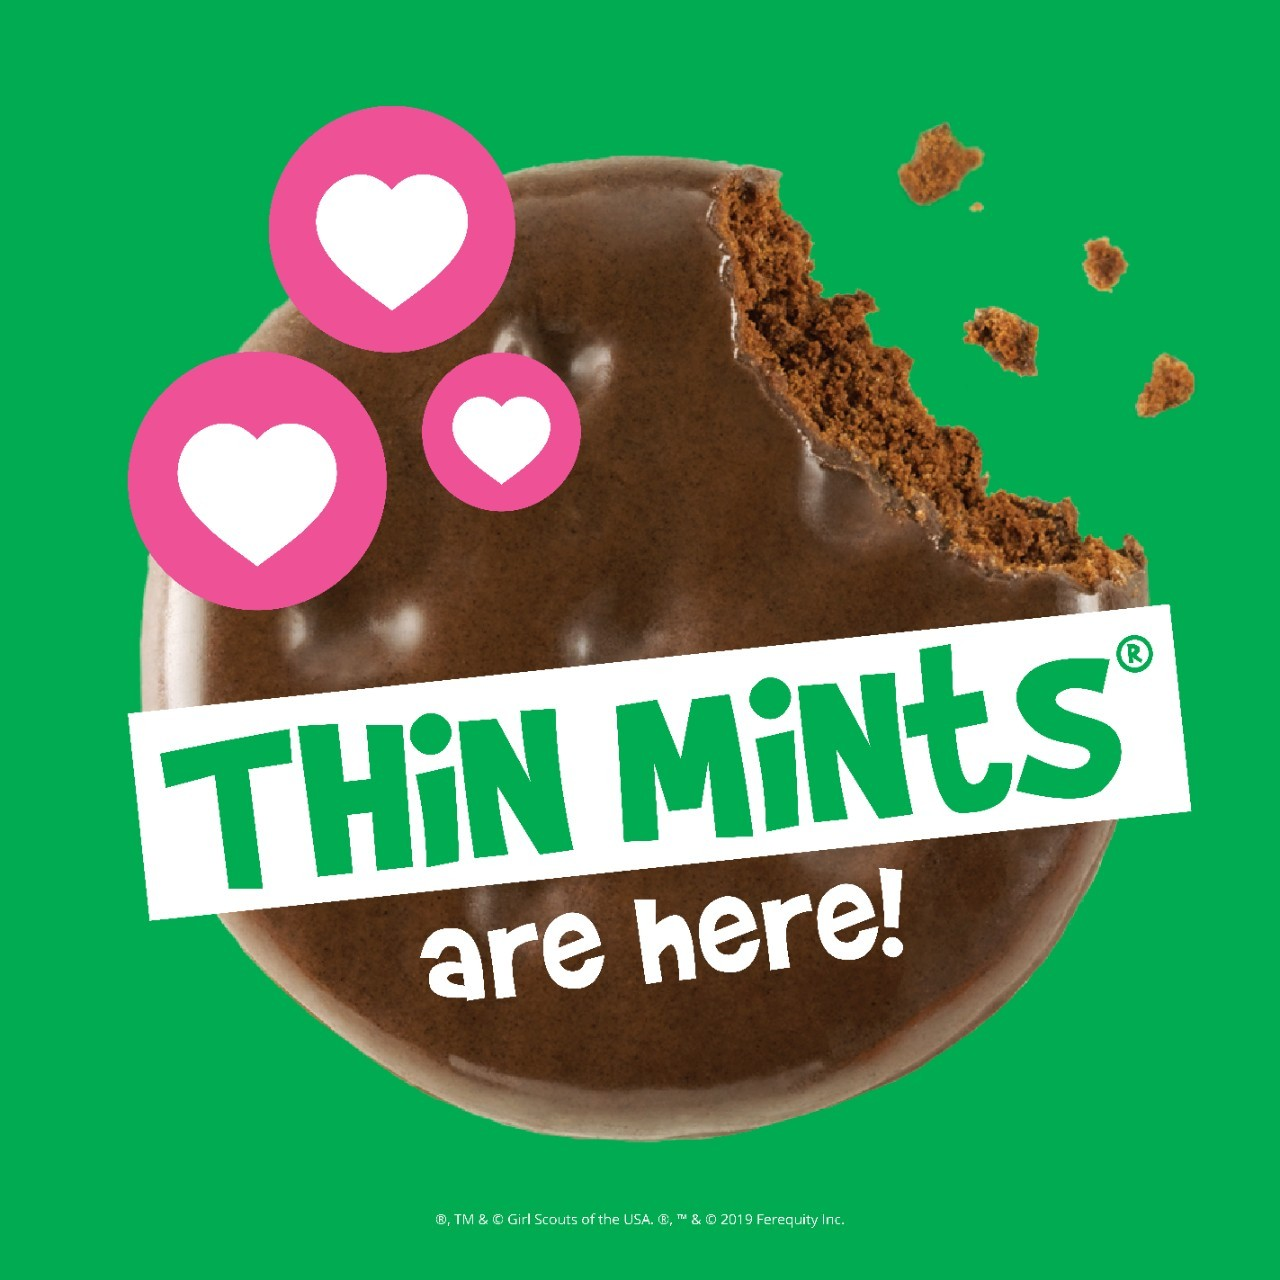 Thin Mints are here